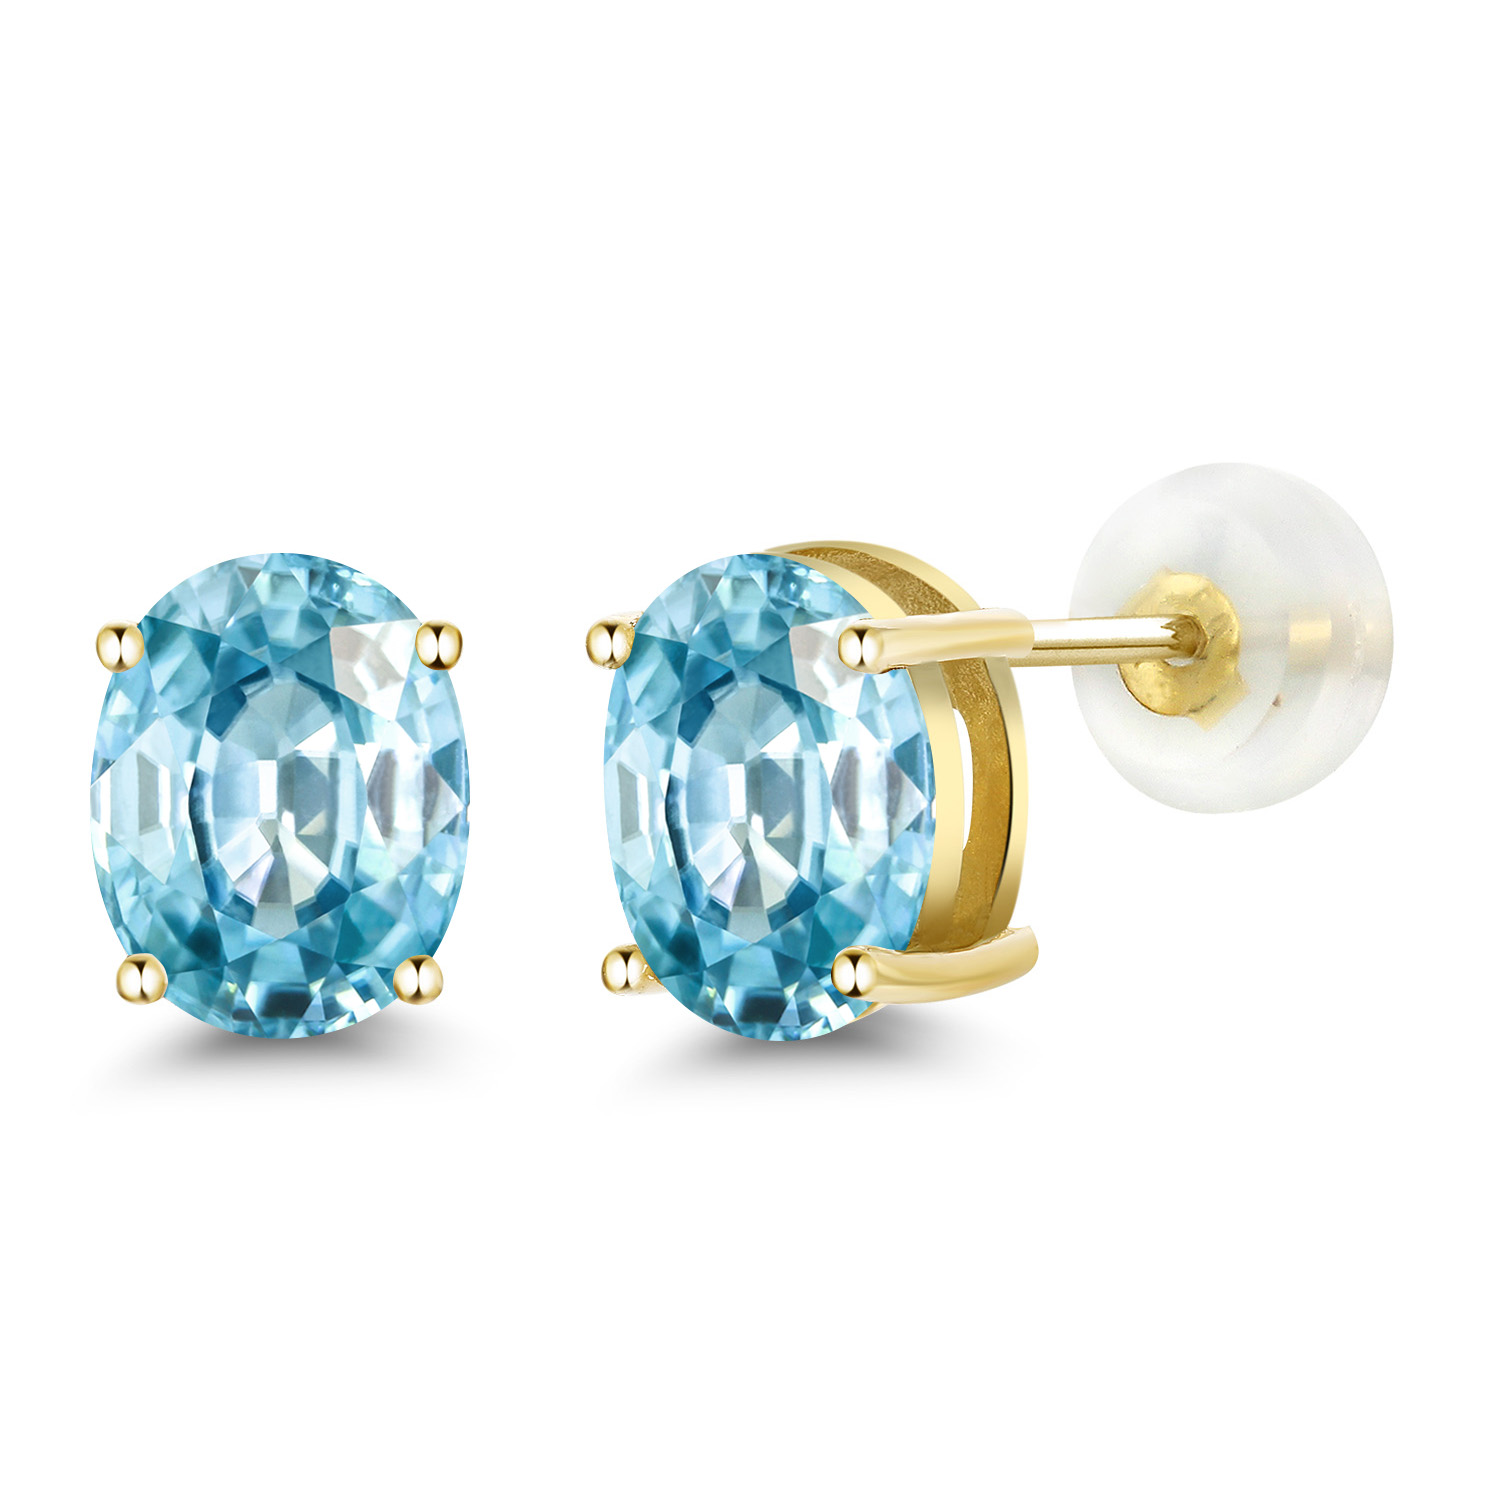 6e7980c80 3.33 Ct Oval 8x6mm Blue Zircon 14K Yellow Gold Stud Earrings | eBay